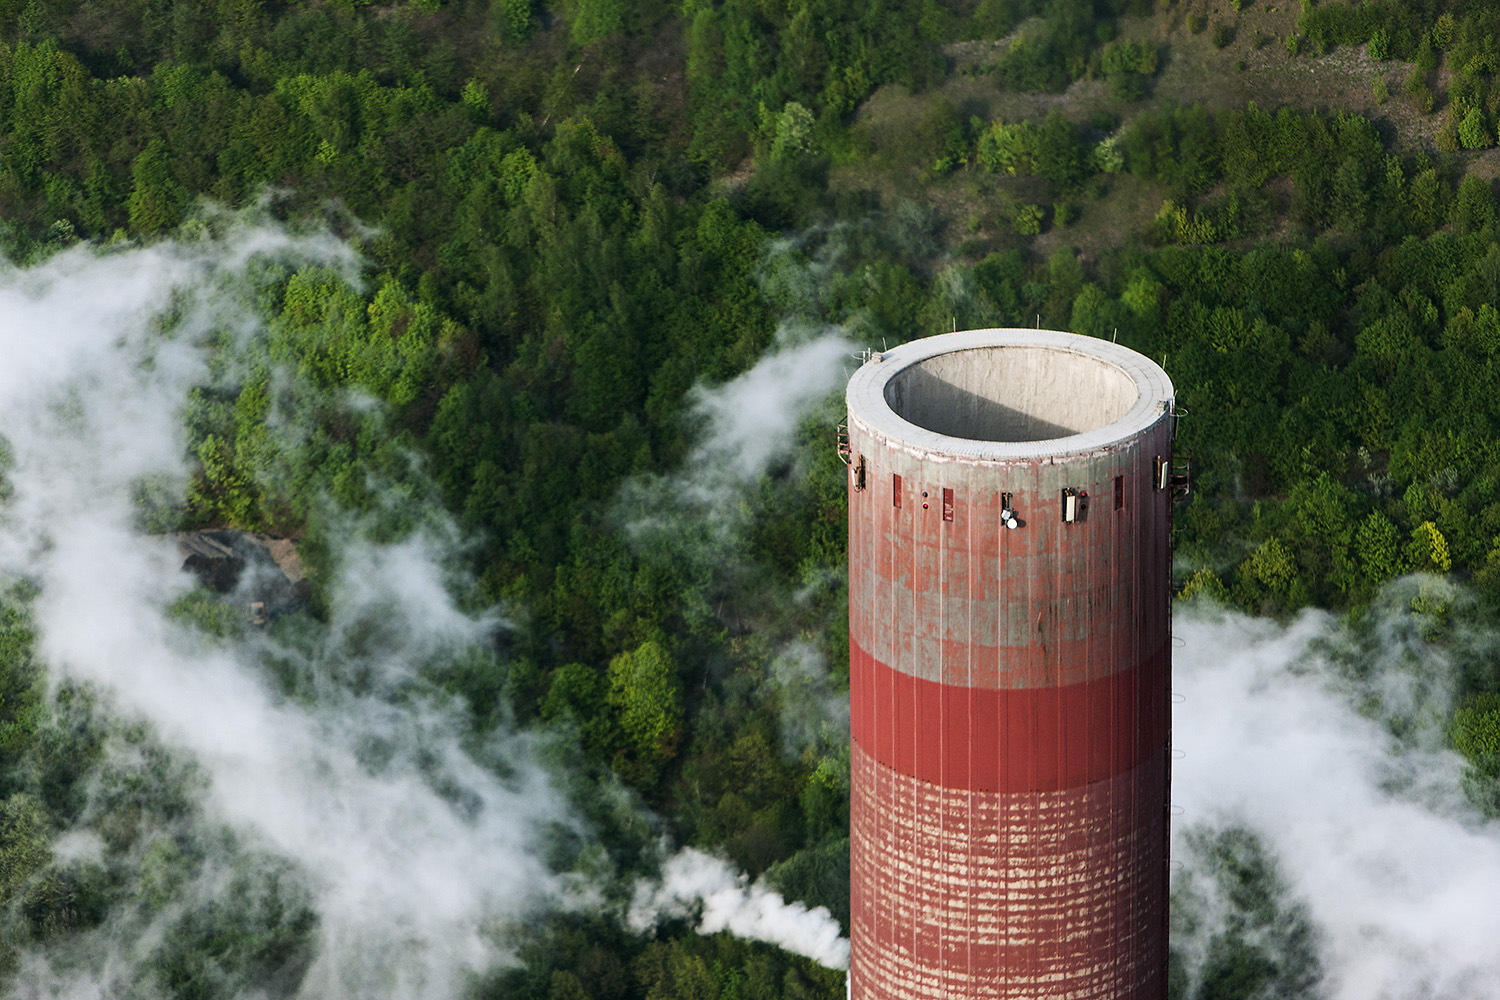 Over The Clouds- Smokestack On Coal-Fired Power Plant